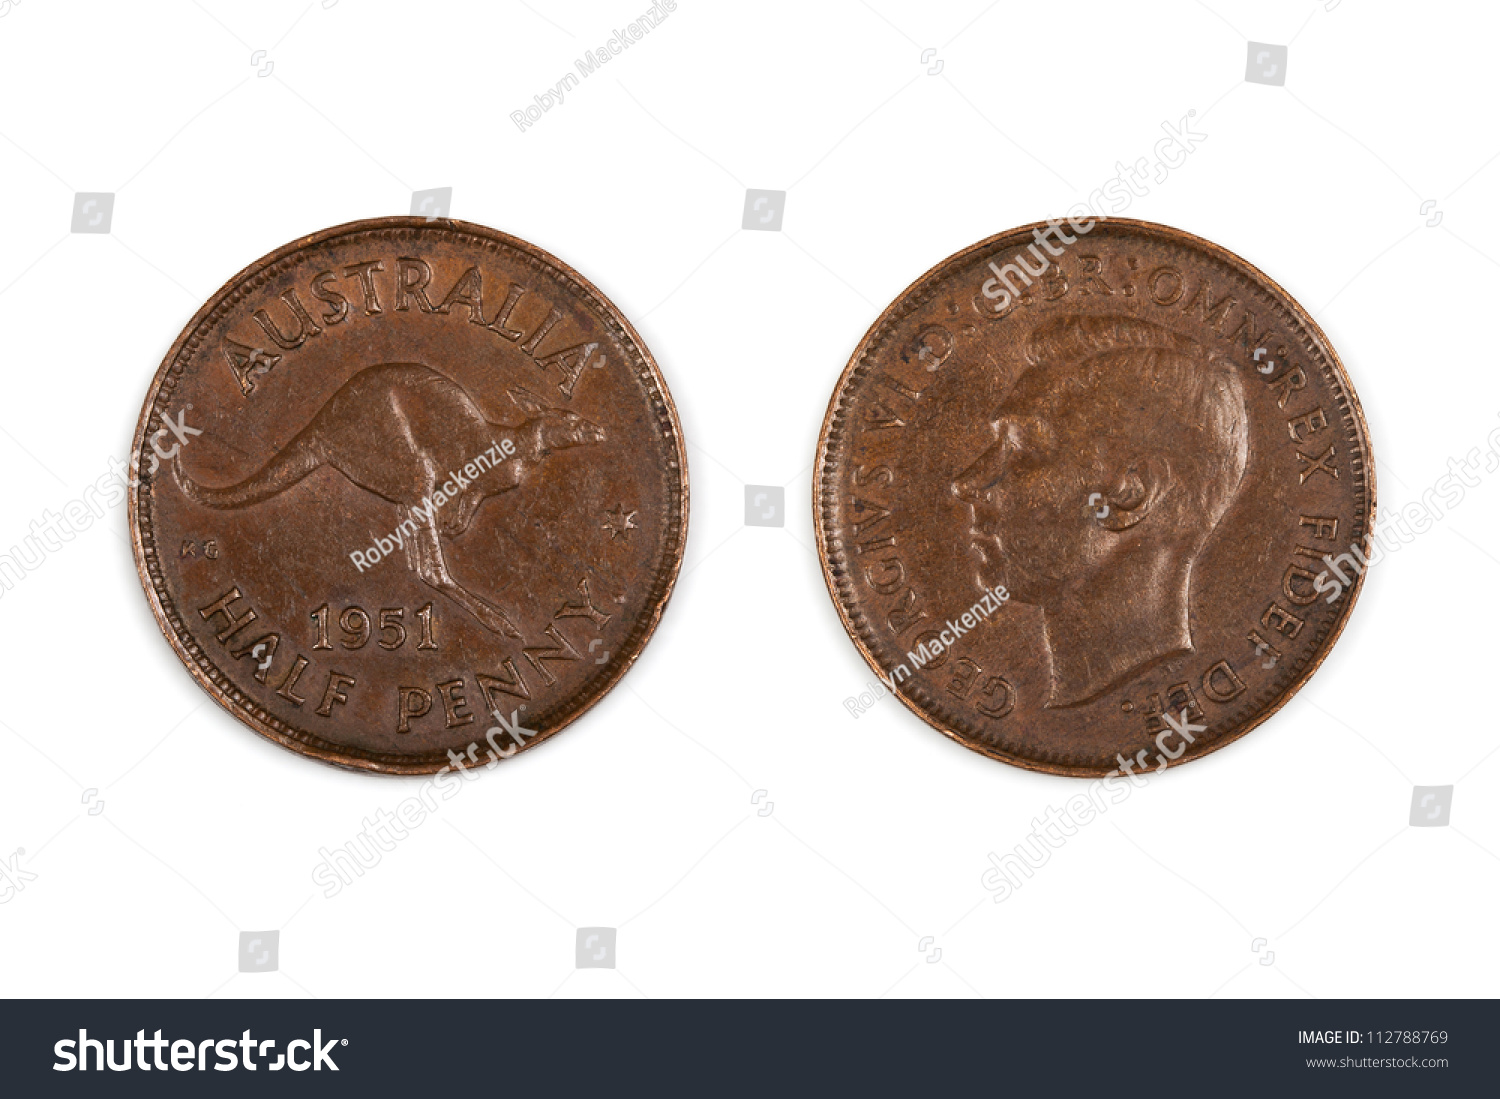 Old Australian Half Penny Coin Stock Photo